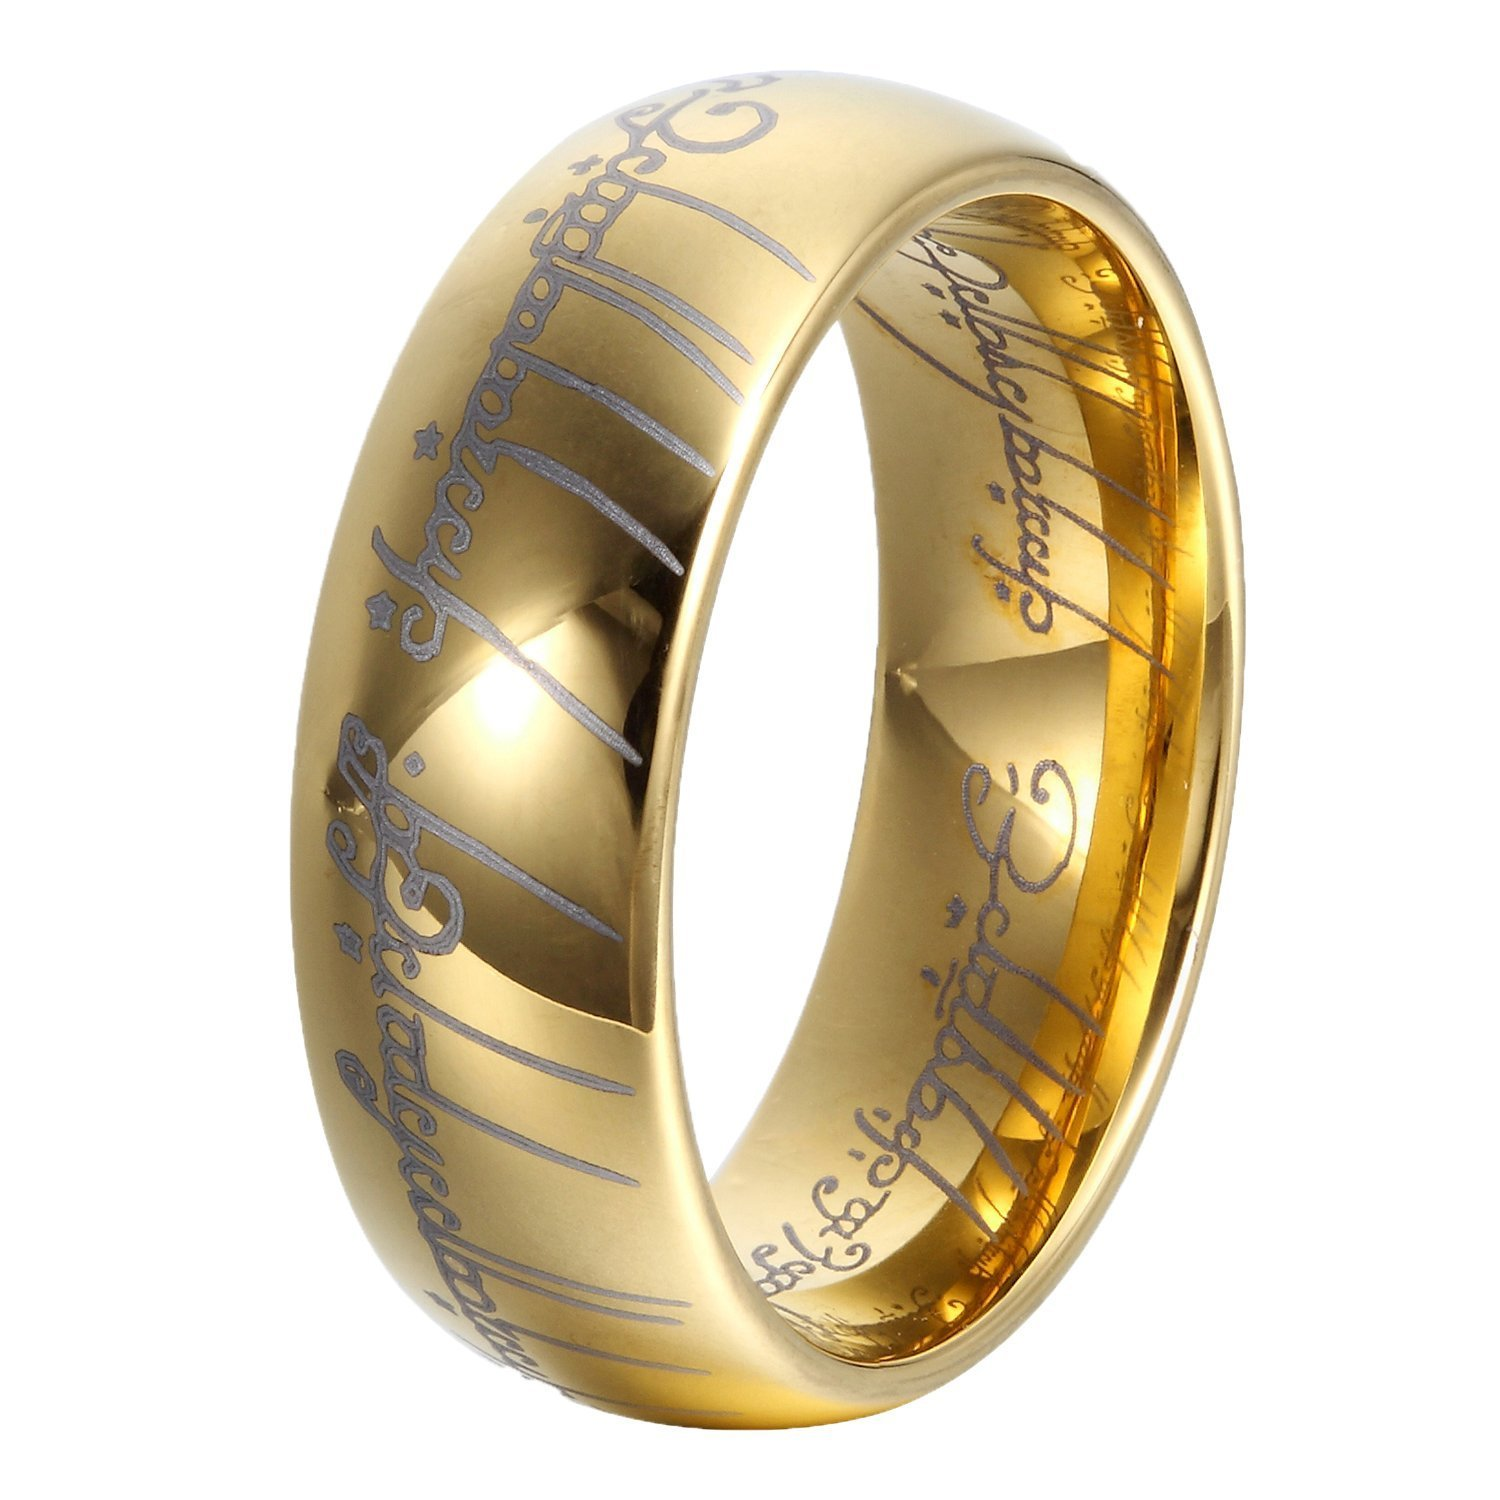 LILILEO Jewelry Gold Plated 18k Lord Of The Rings Tungsten Carbide Laser-etched Wedding Ring Band For Unisex Rings by LILILEO